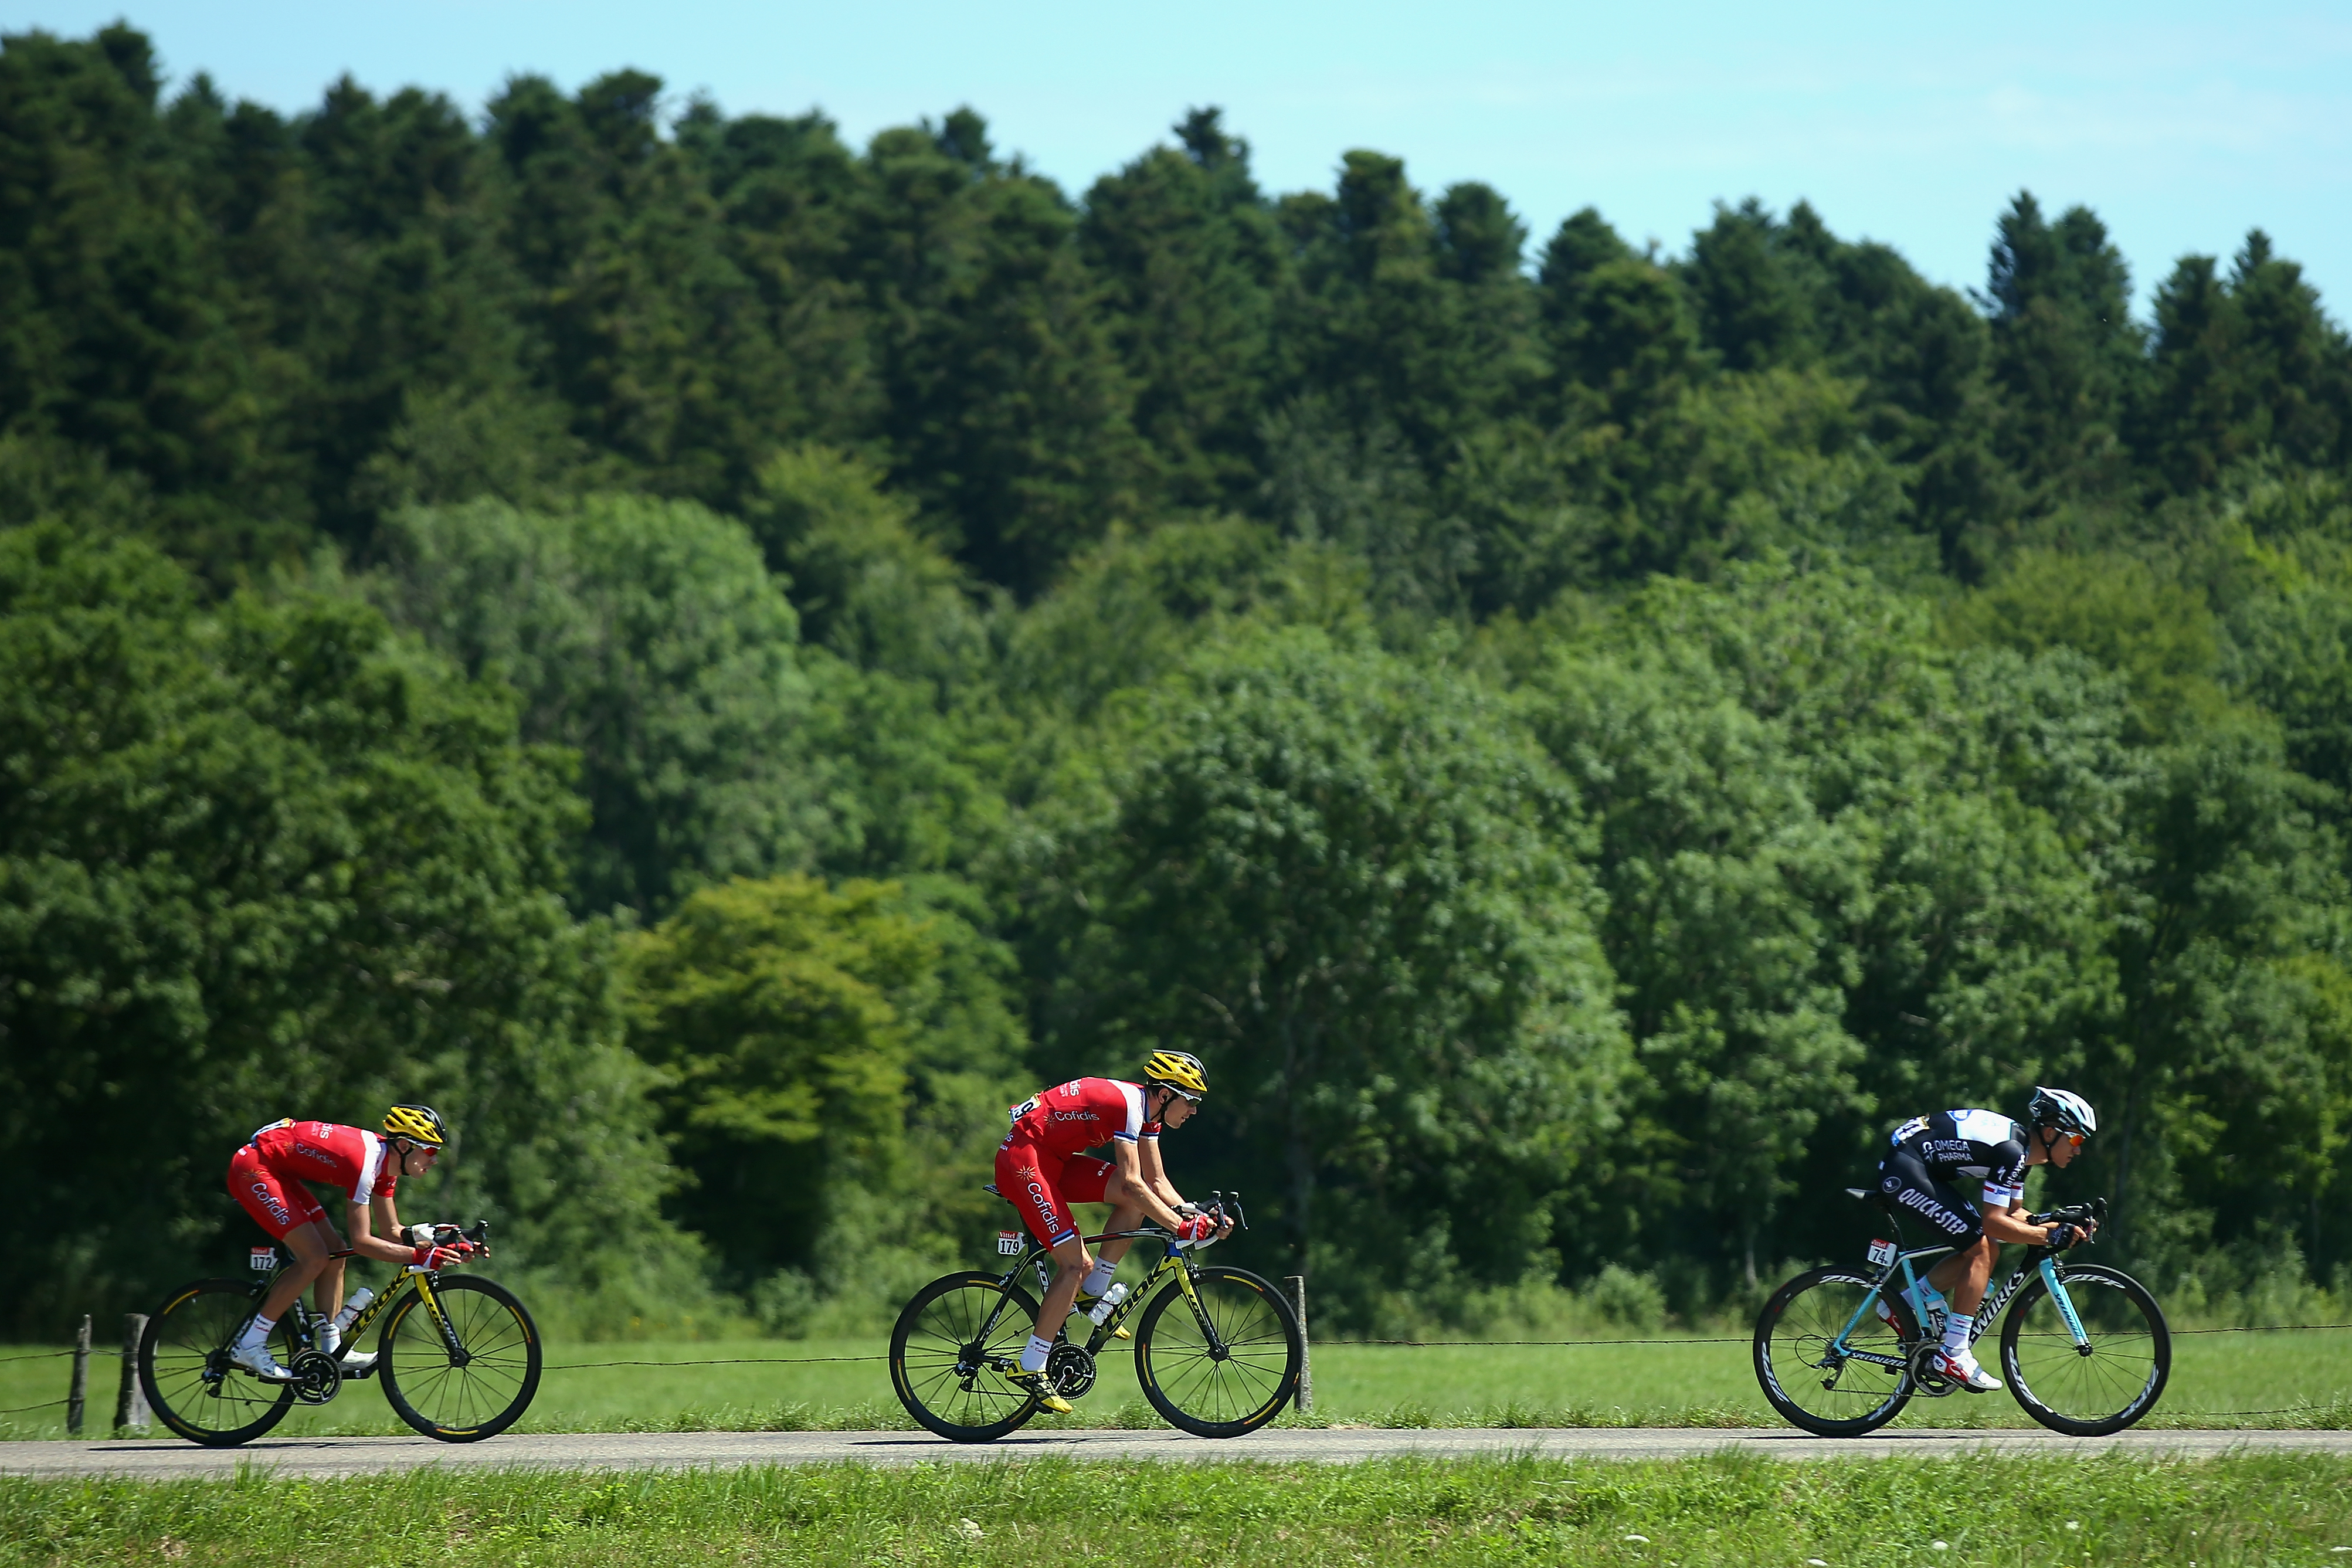 Nicolas Edet of Cofidis, Rein Taaramae of Cofidis and Michal Kwiatkowski of Omega Pharma-Quickstep in action during the eleventh stage.